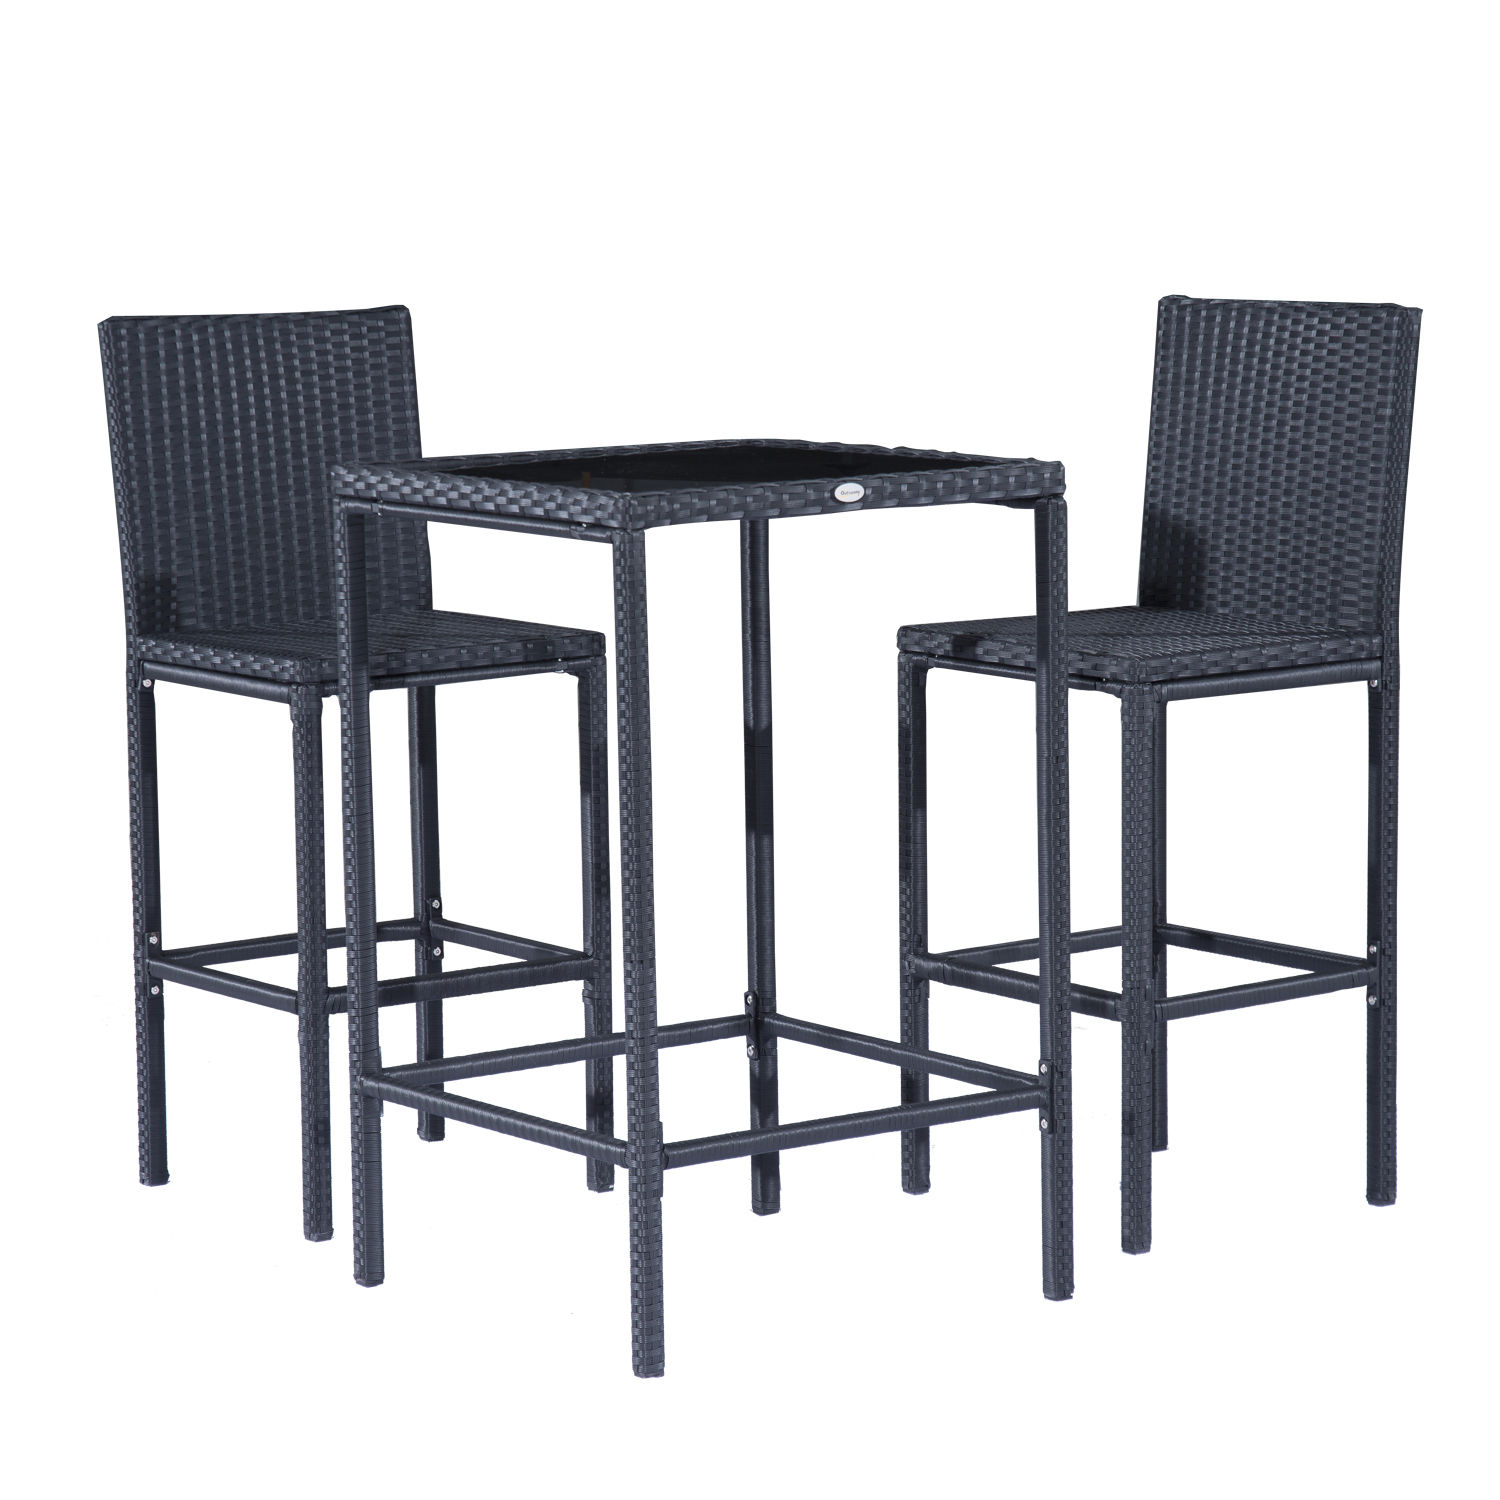 Outsunny 3-Piece Patio Bistro Dining Set Rattan Wicker Outdoor